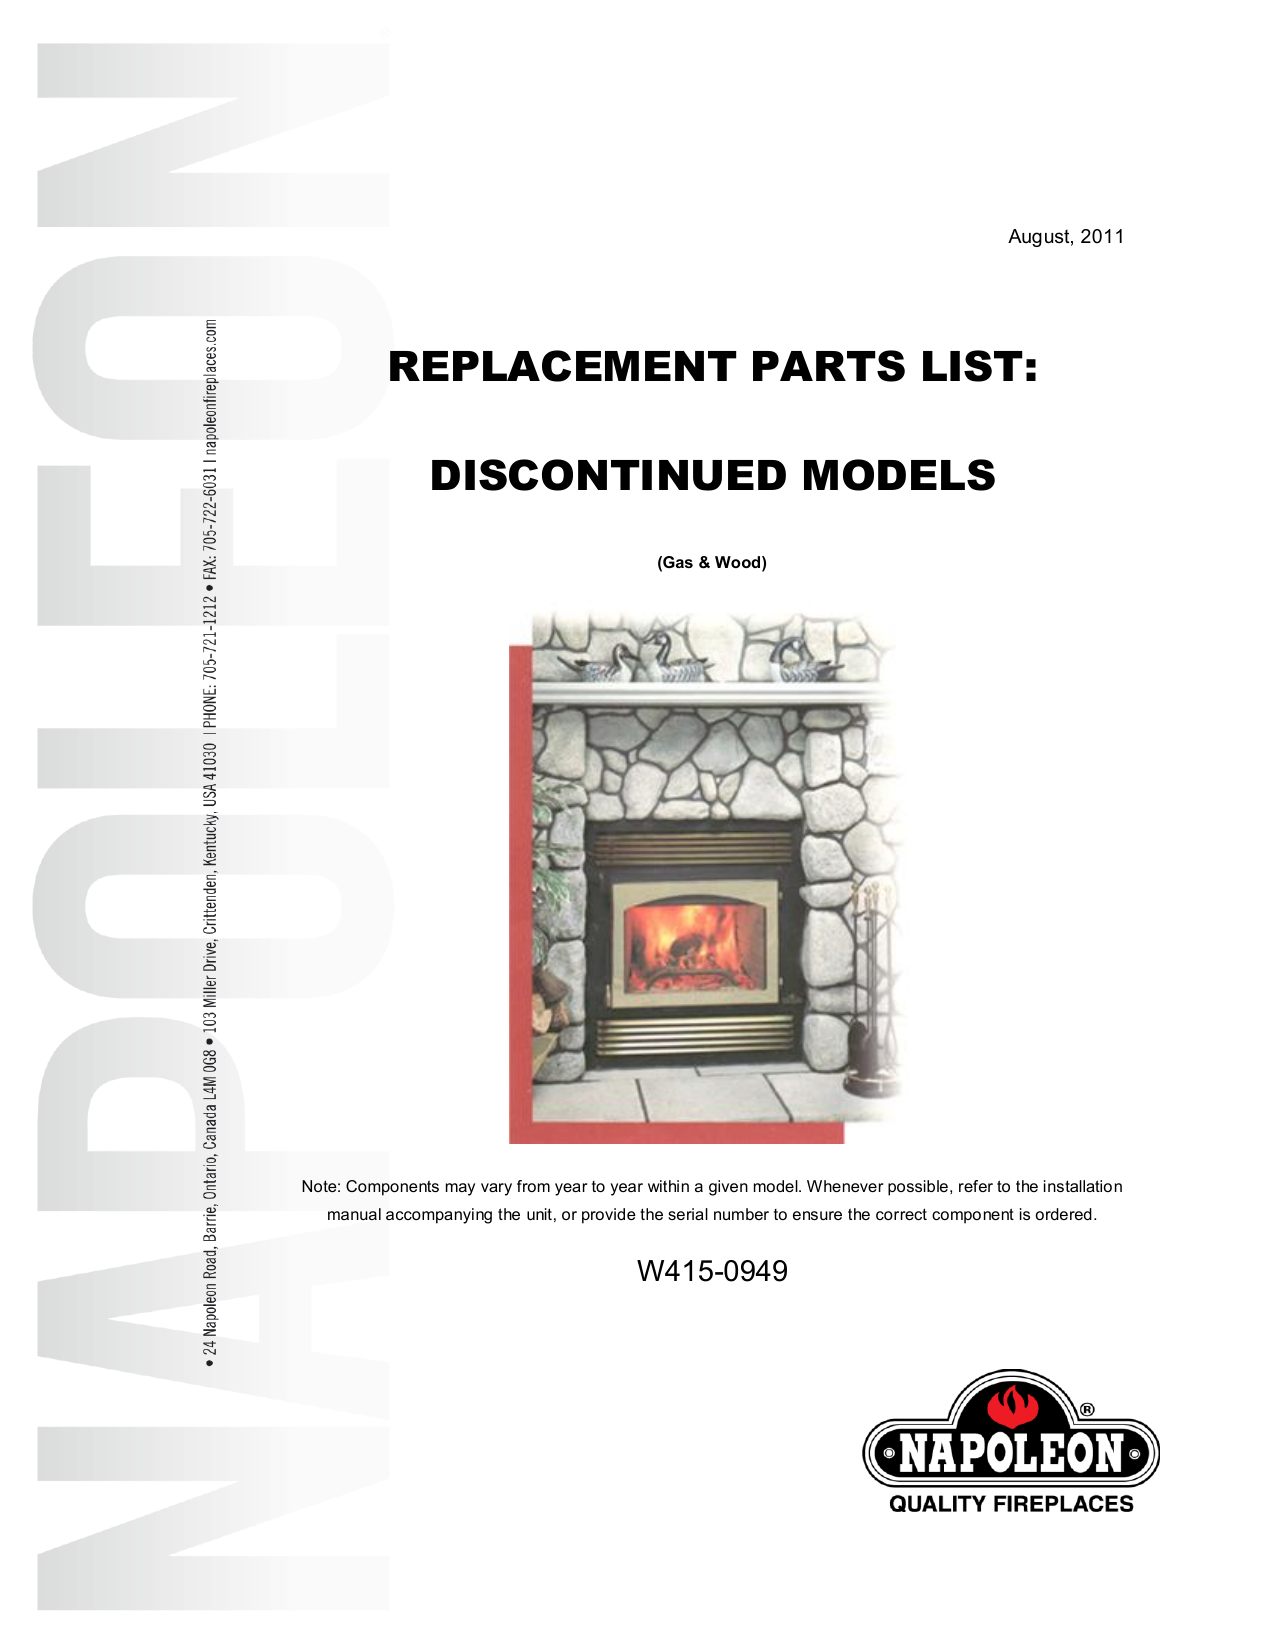 replacement parts list: discontinued models on